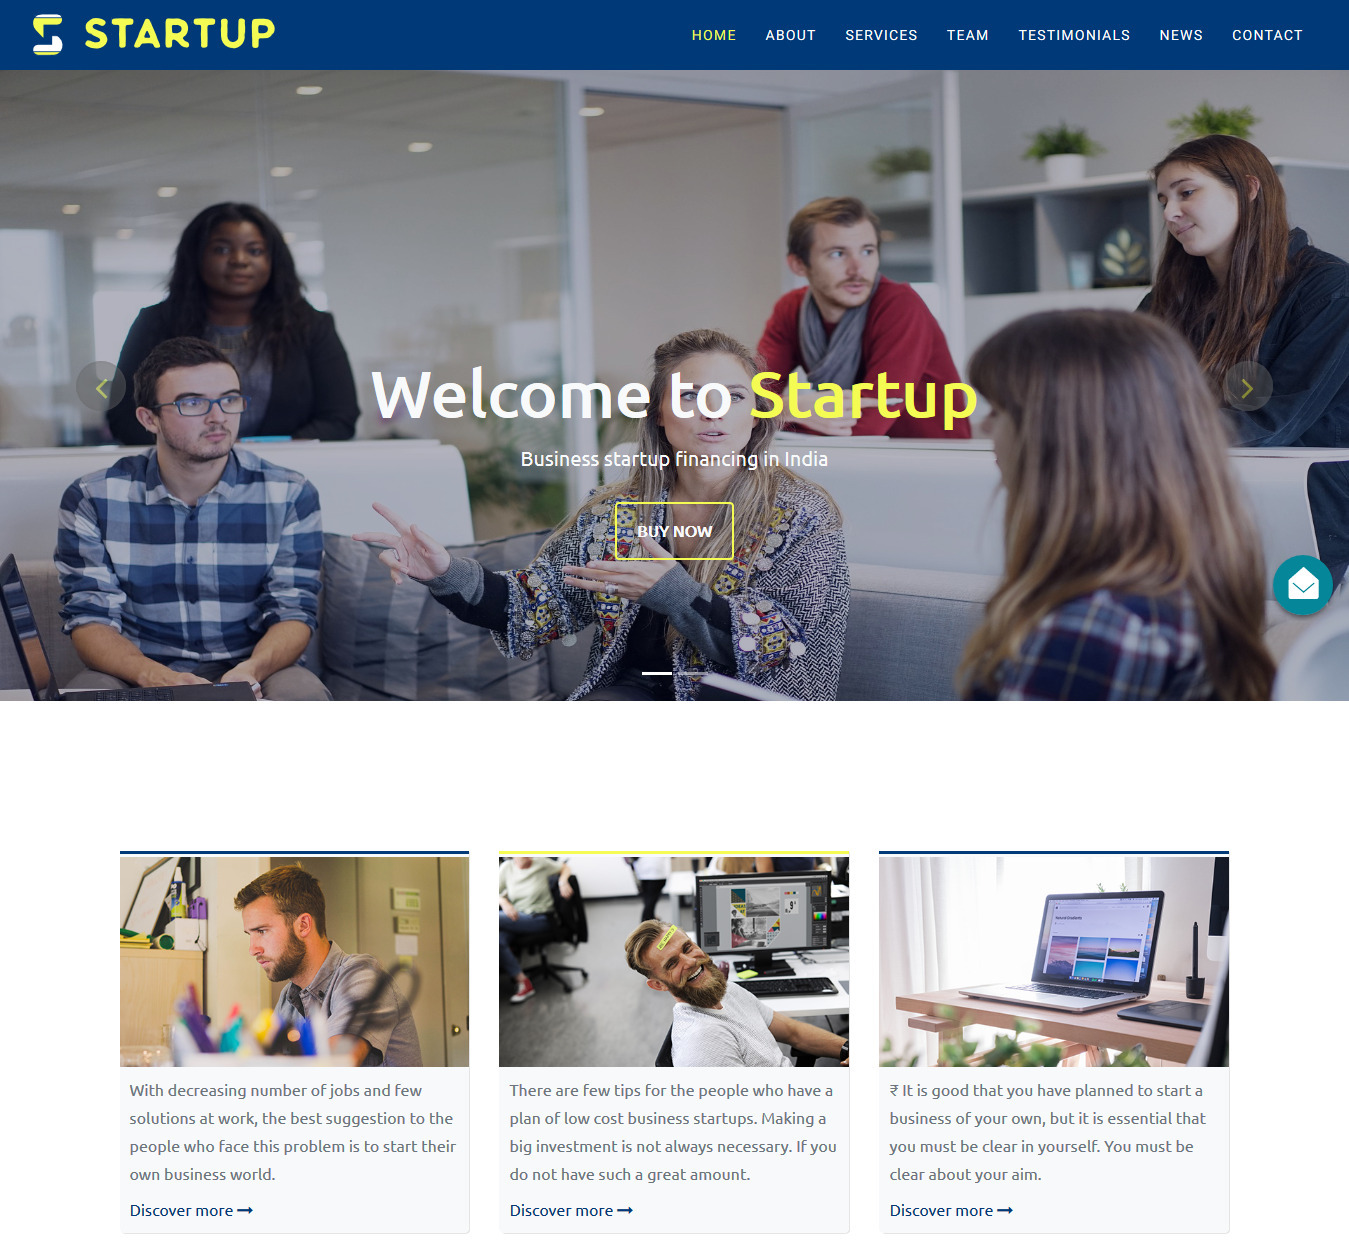 Startup – High-quality Free Bootstrap HTML5 Multipurpose Business Template